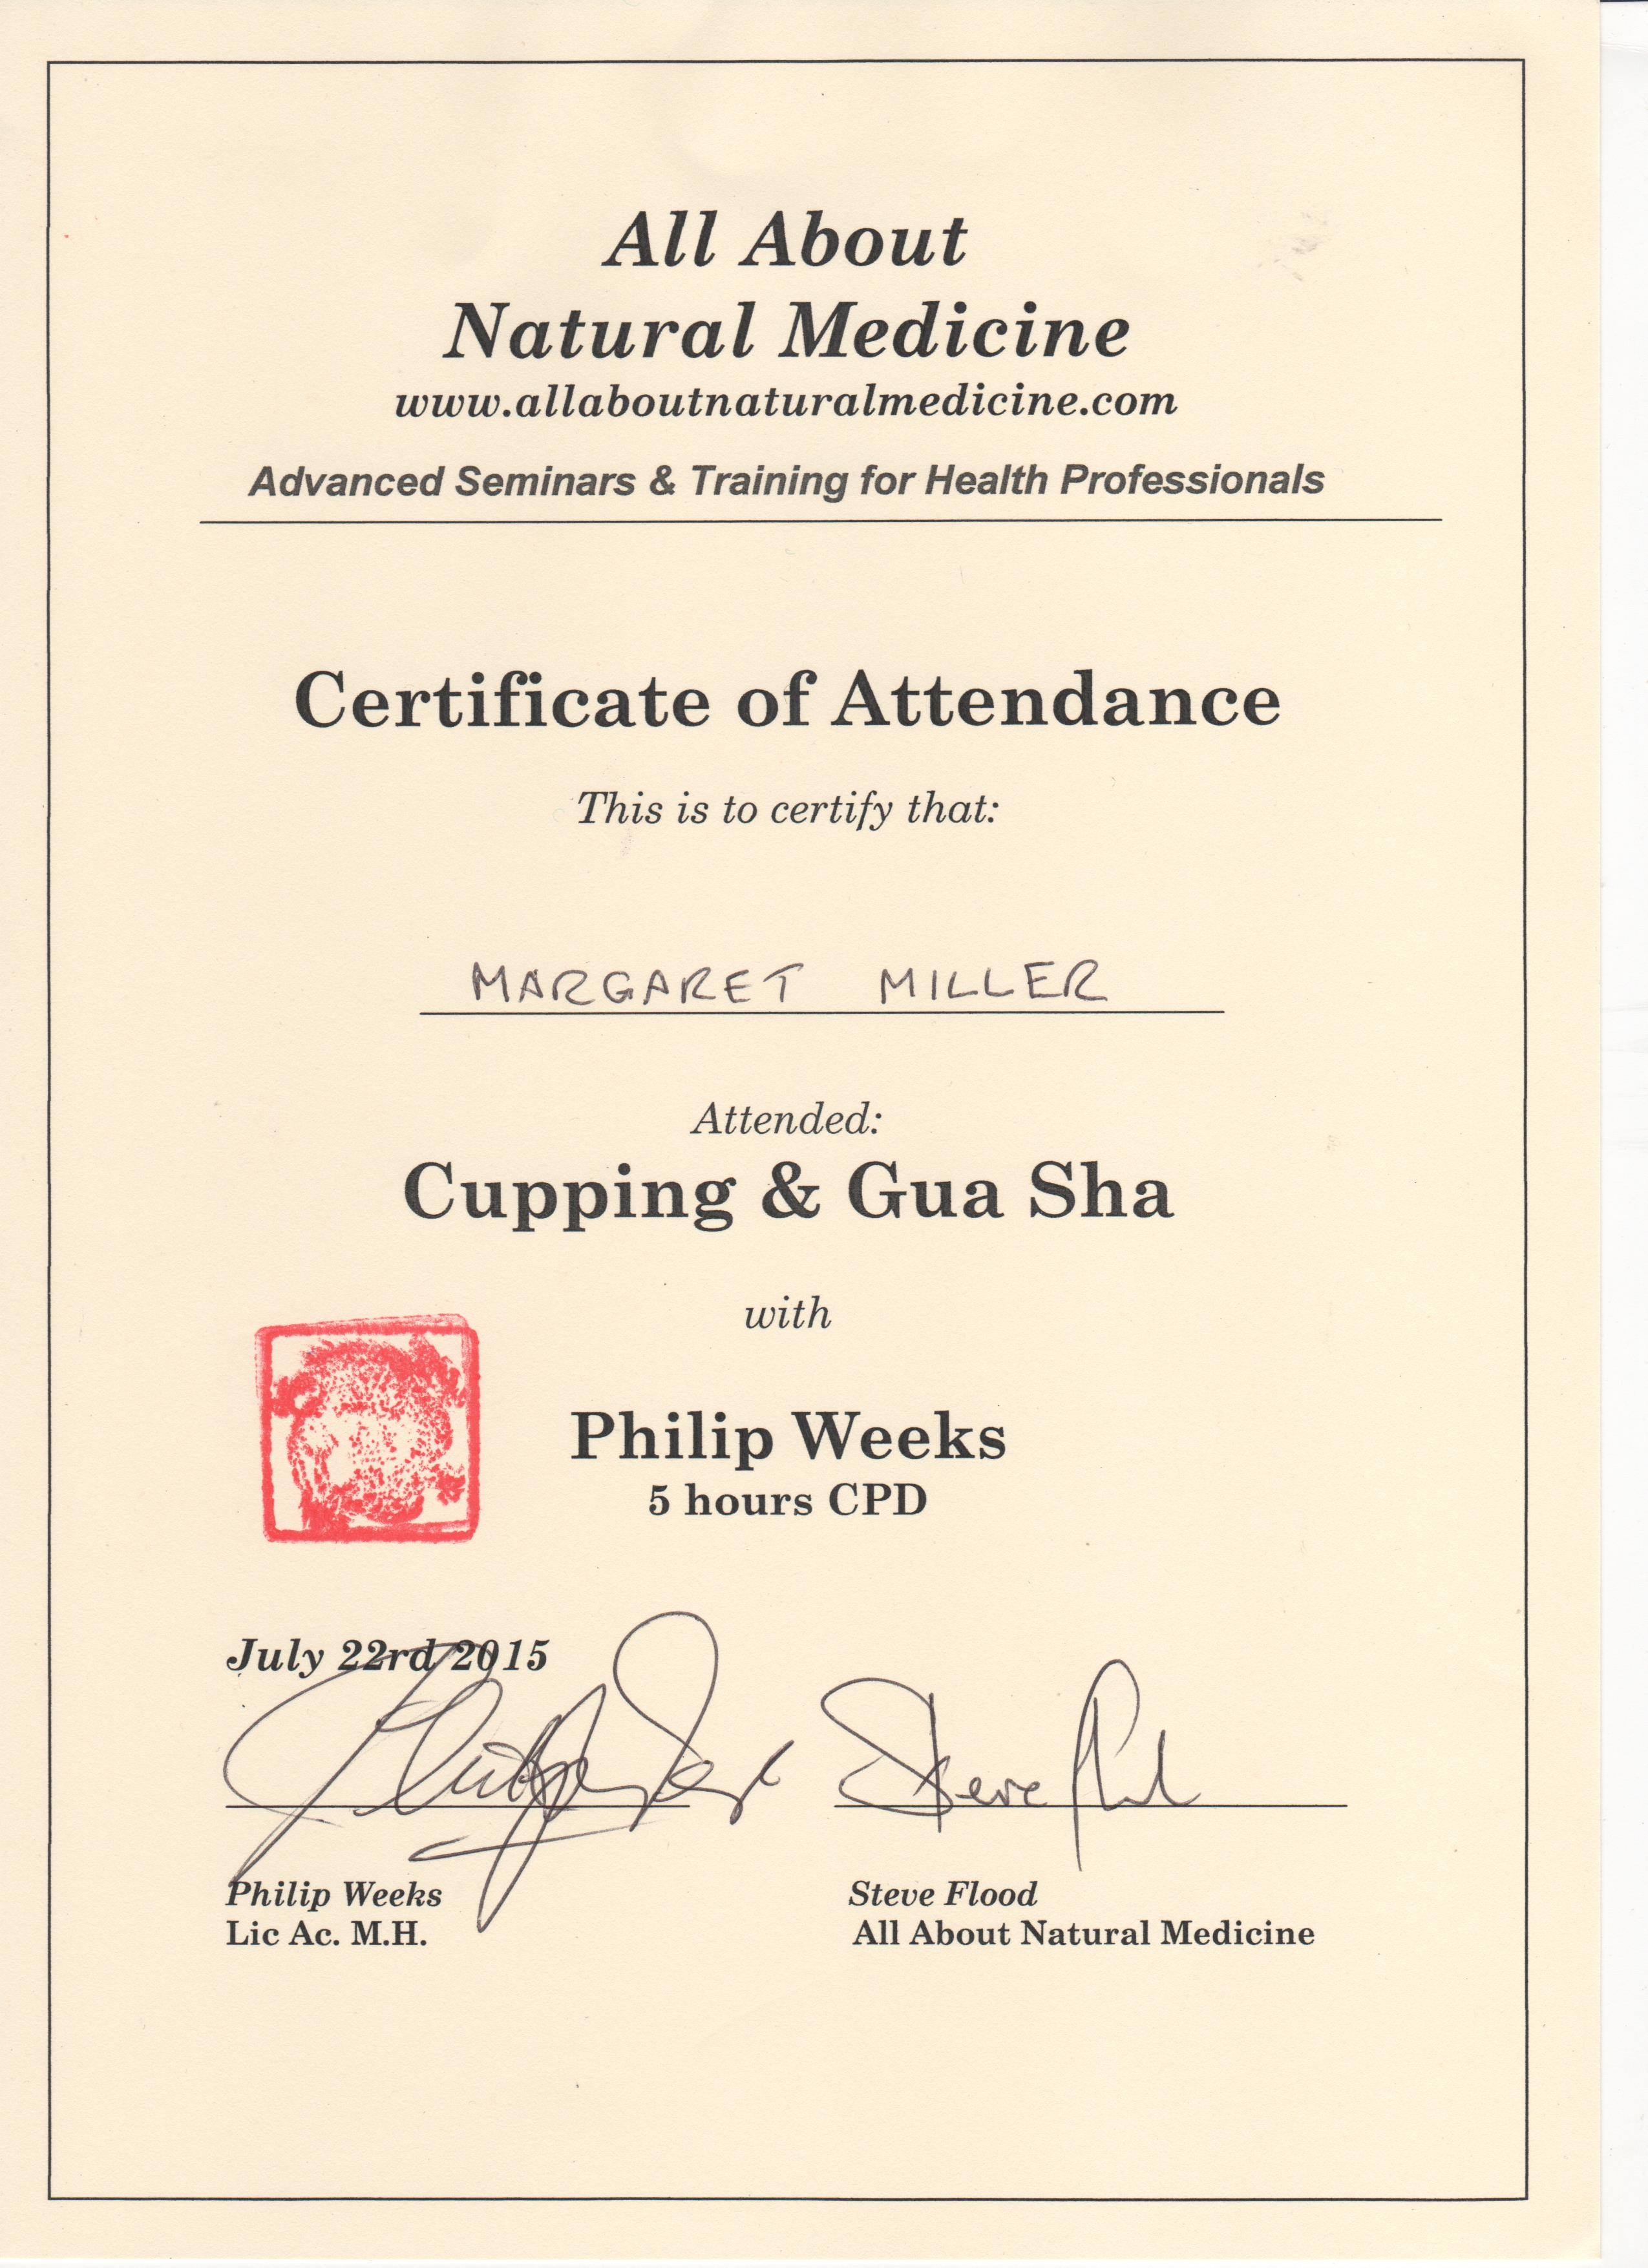 Certificates and qualifications inverness acupuncture 07962 66 kht certificate 001 tung certificate 001 gua sha and cupping 001 2 xflitez Gallery